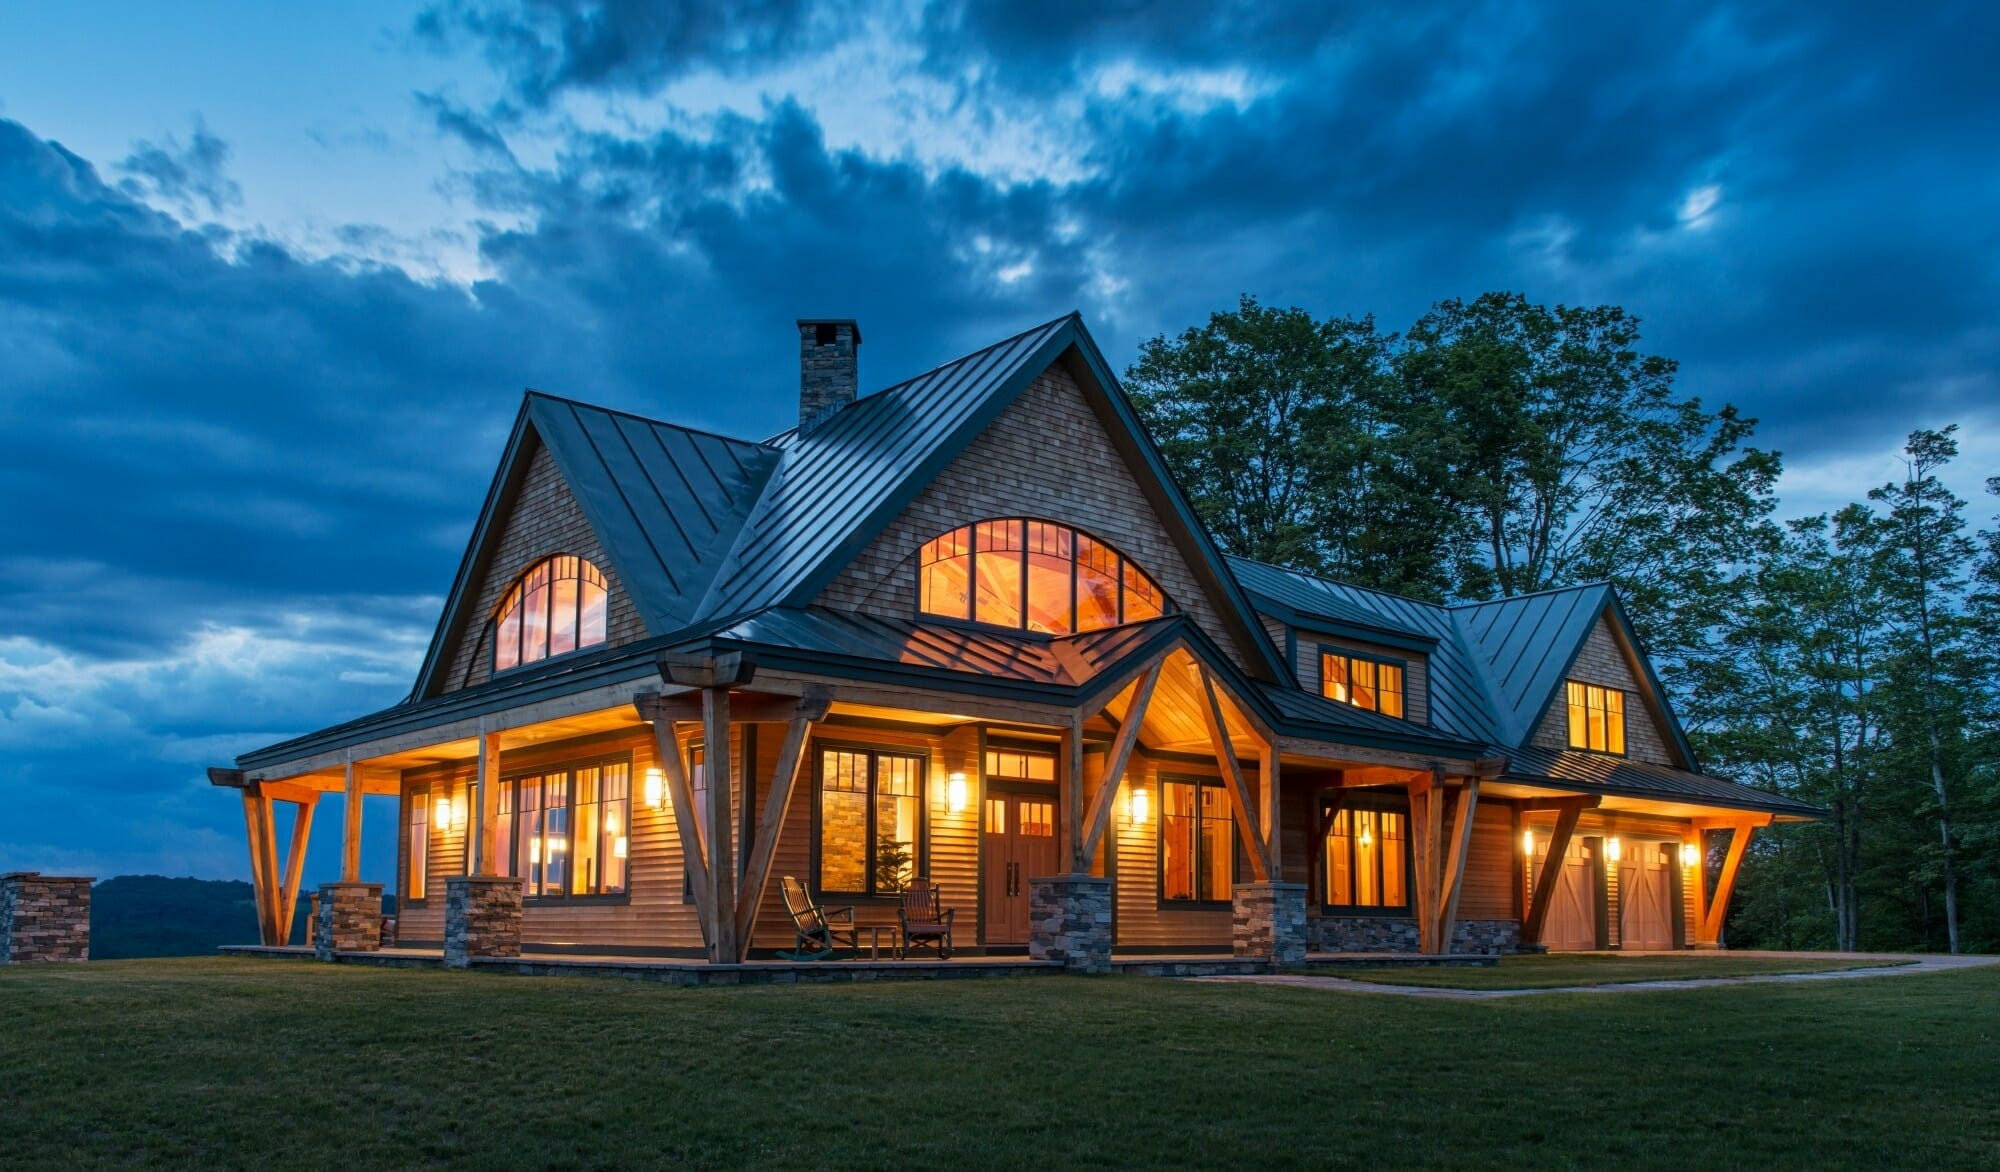 Exterior, Night Time View of Award-winning Night Pasture Farm in Chelsea, VT